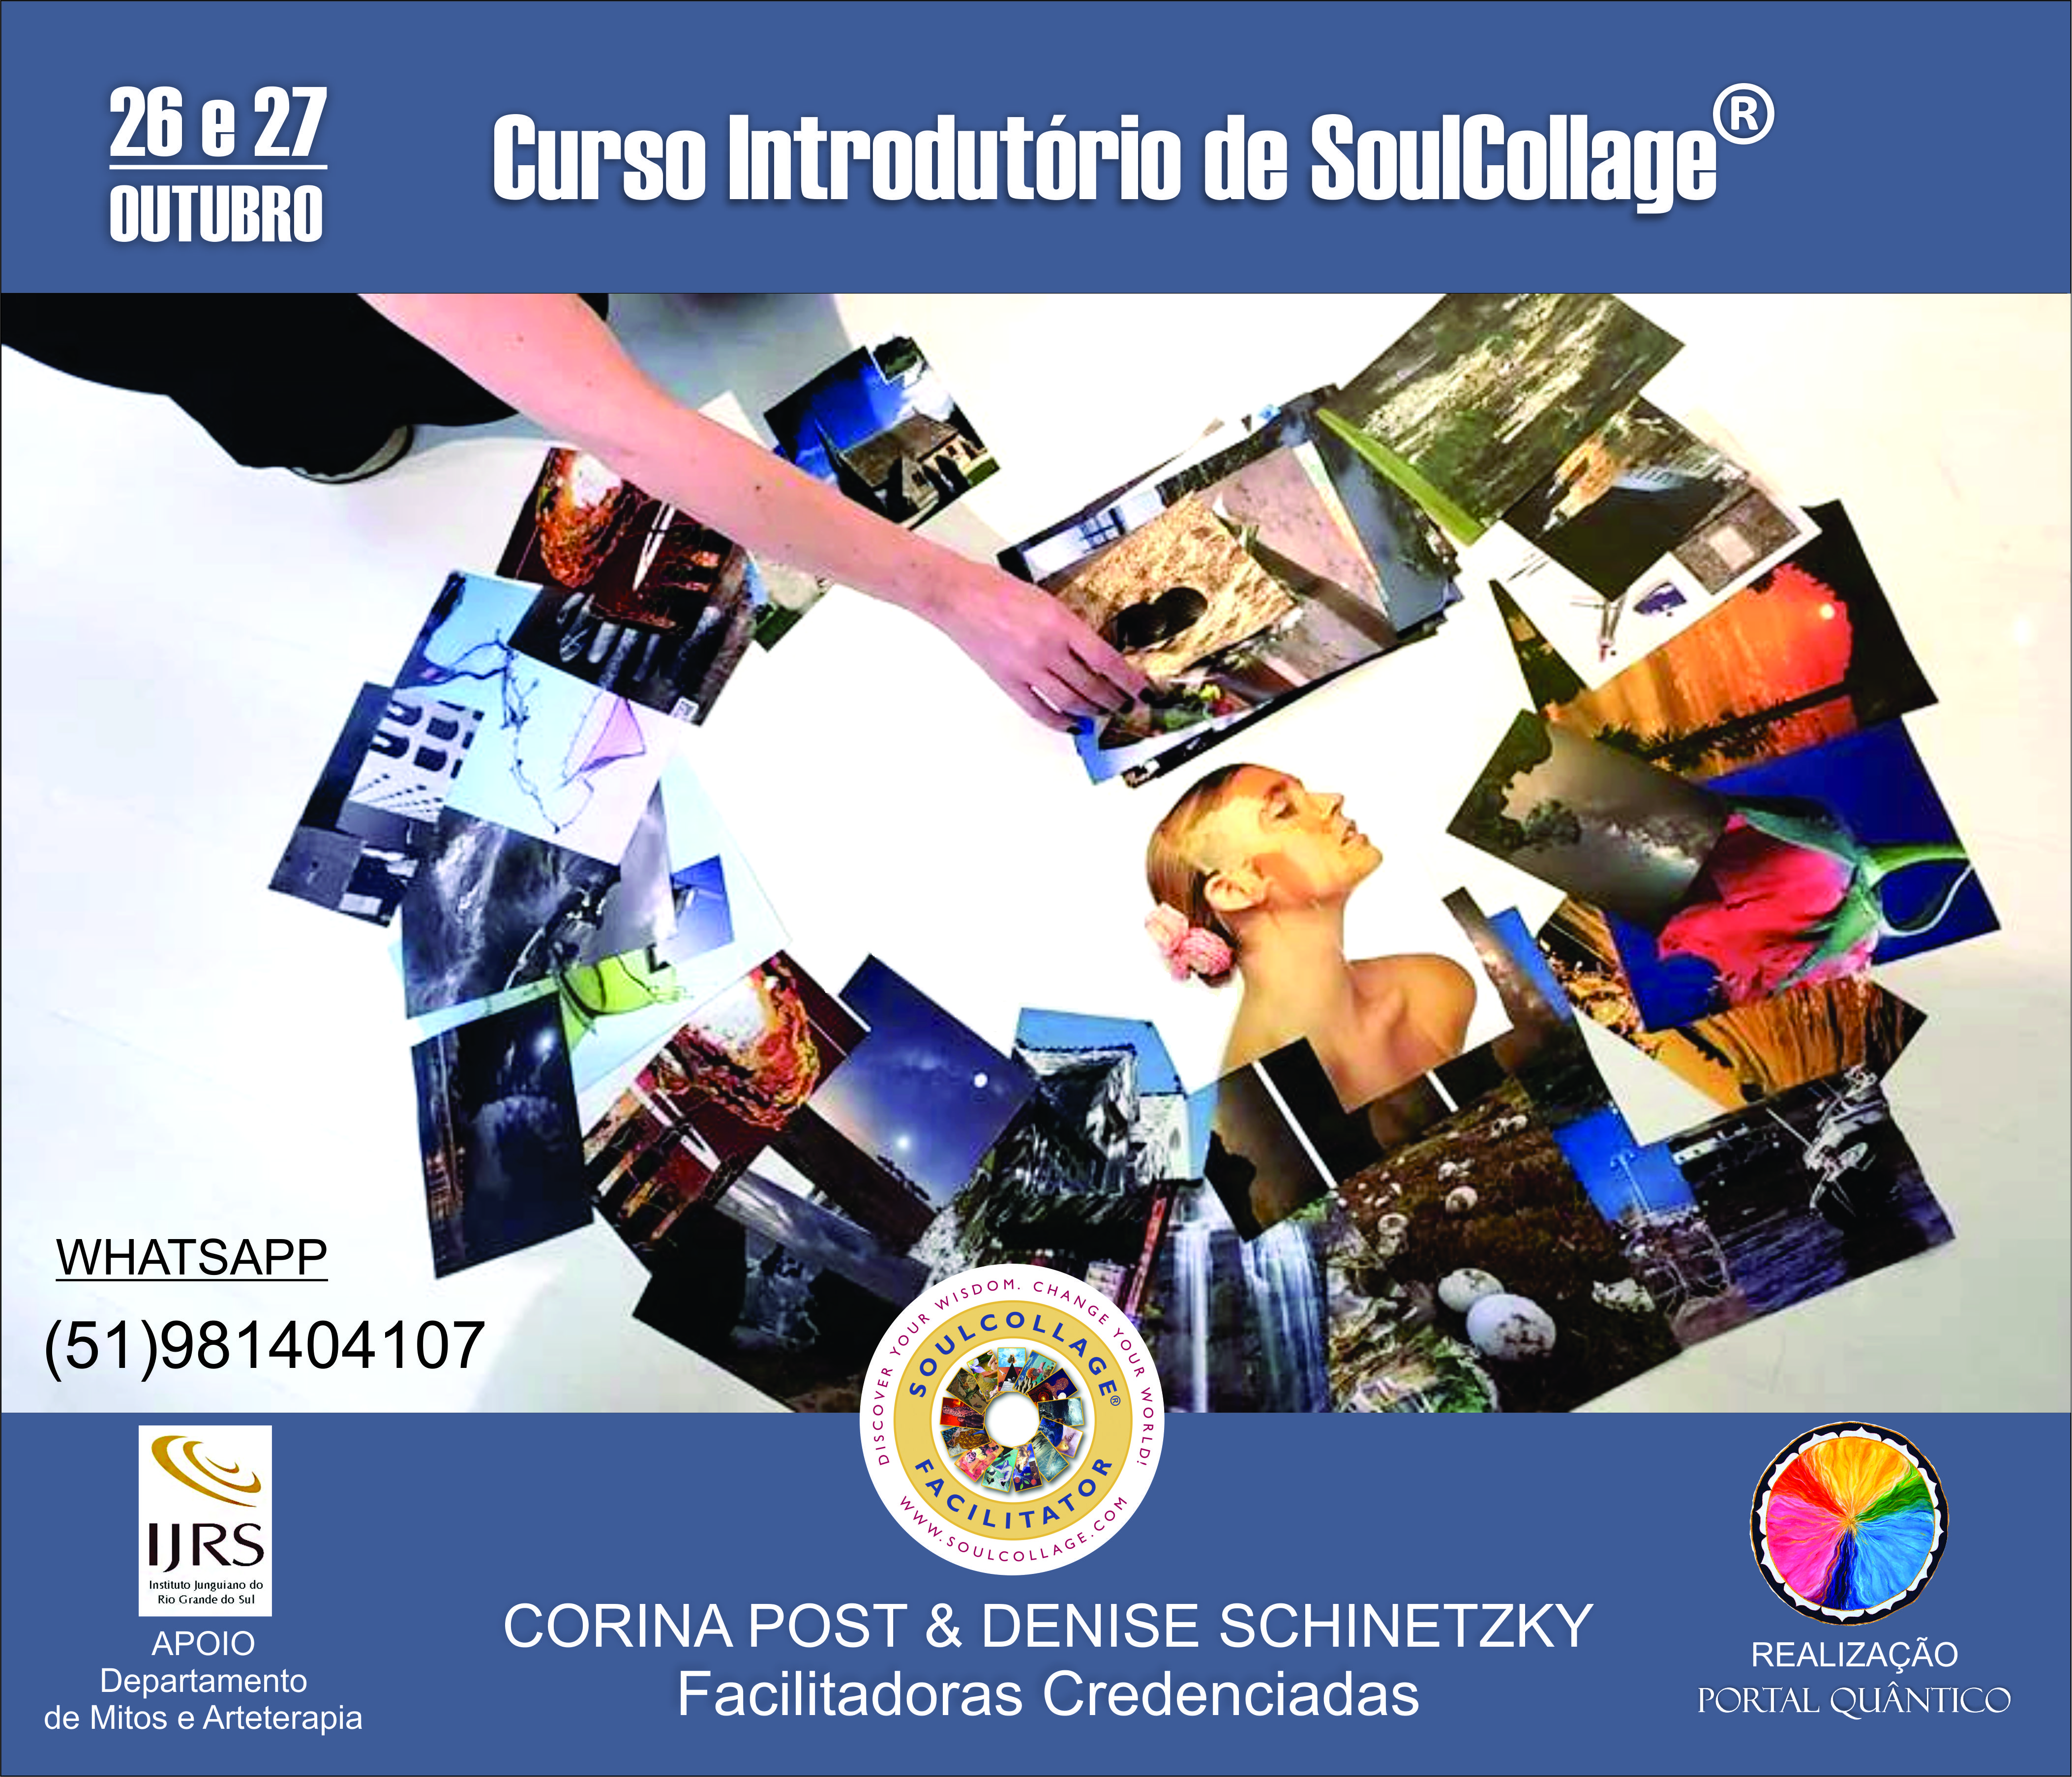 Curso introdutorio